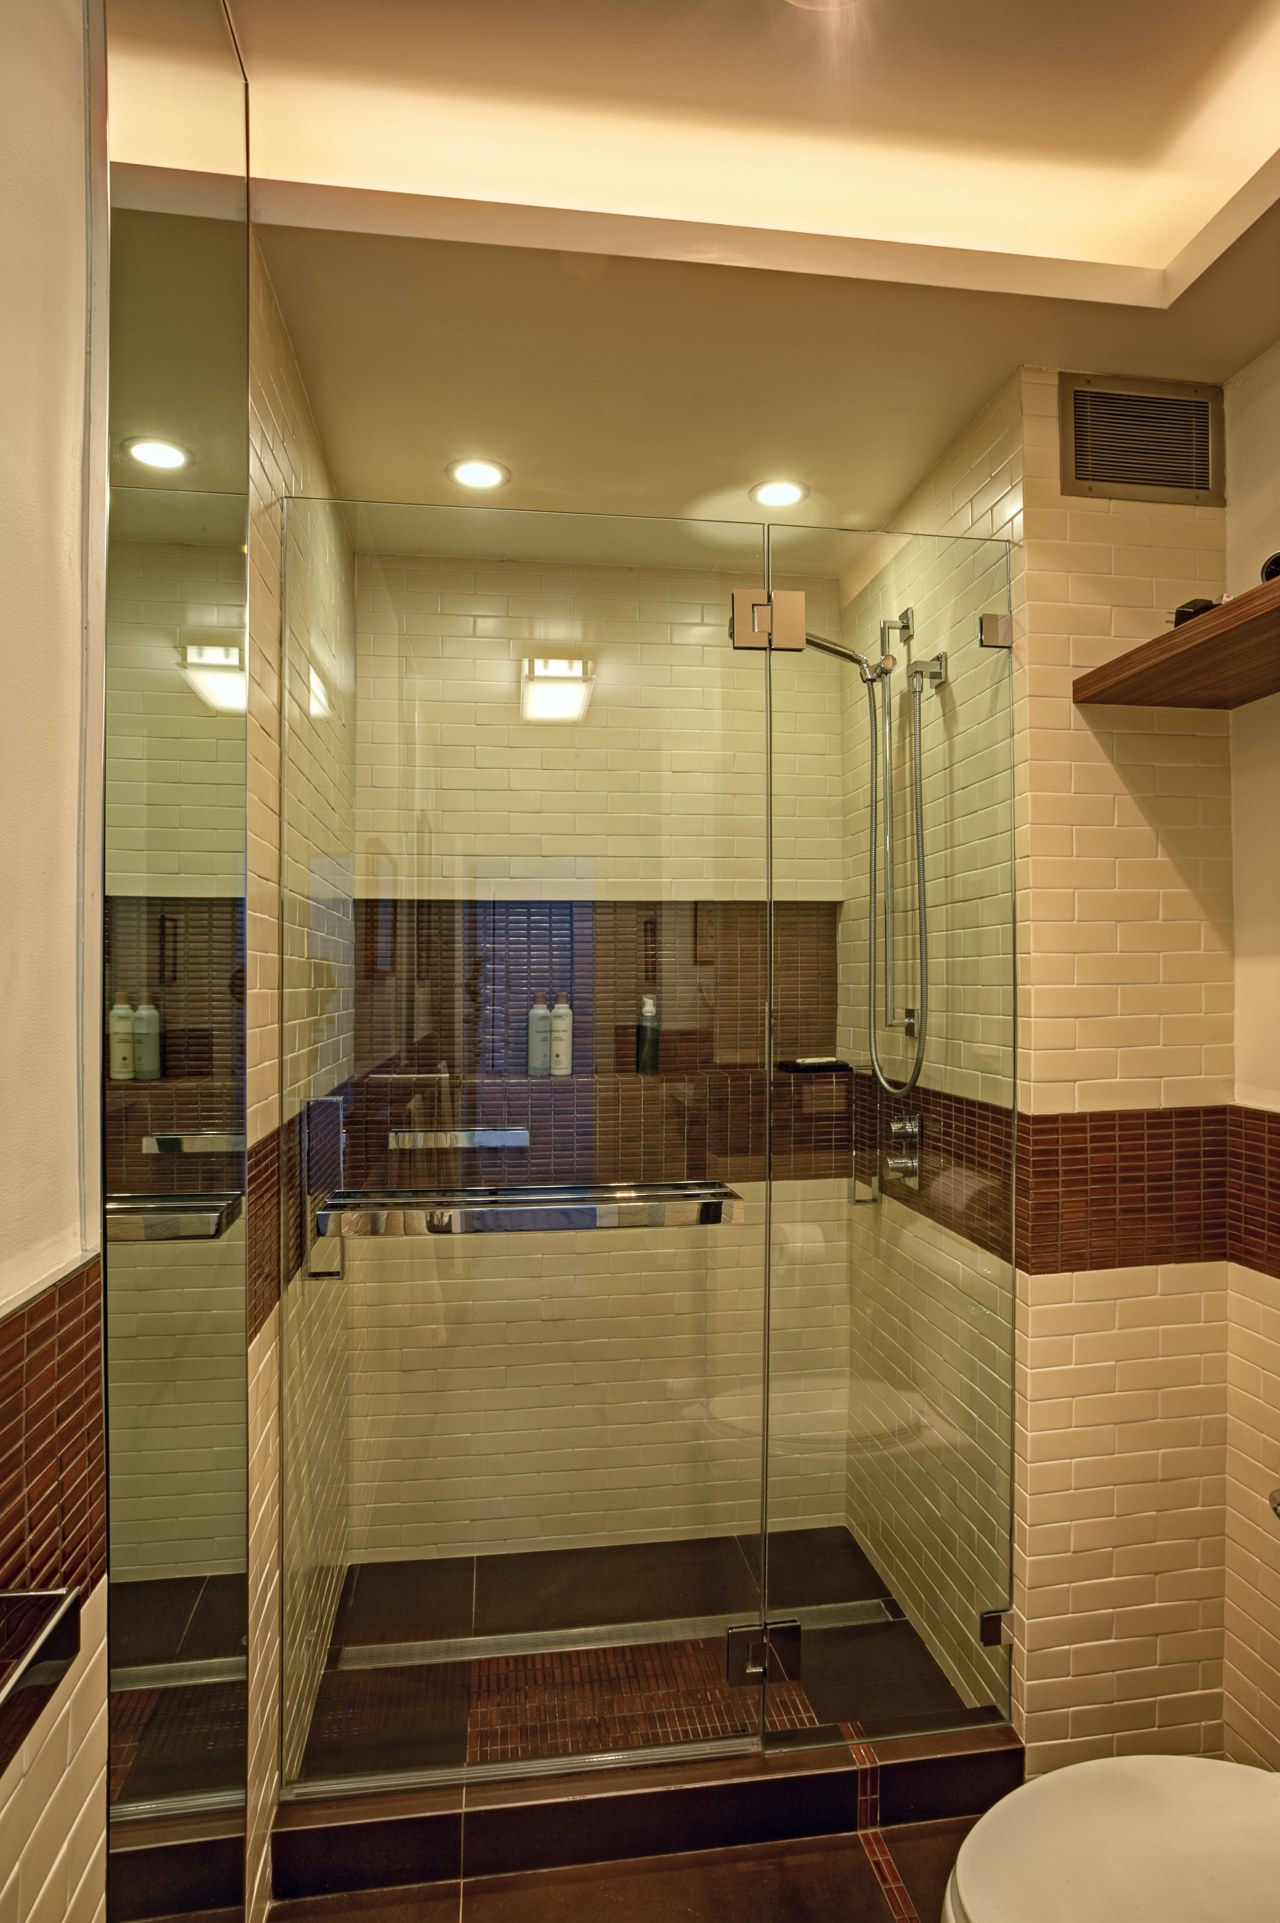 Craftsman-style tilework creates visual interest in this wheelchair-friendly architecture, bathroom, ceiling, estate, floor, flooring, glass, home, interior design, room, tile, wood, brown, orange